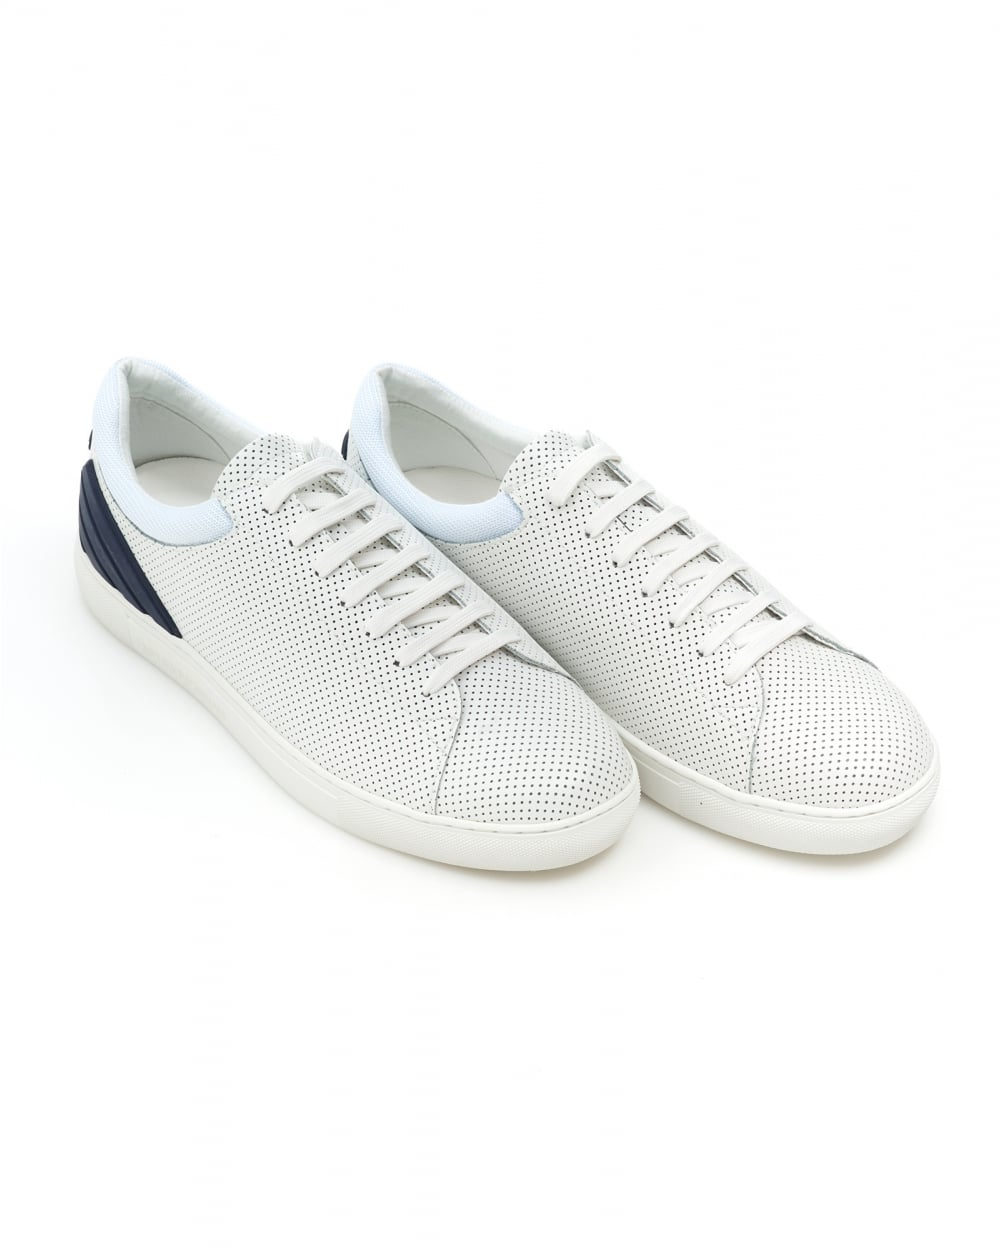 5d20d0375 Emporio Armani Mens Perforated Trainers, Lace Up White Leather ...